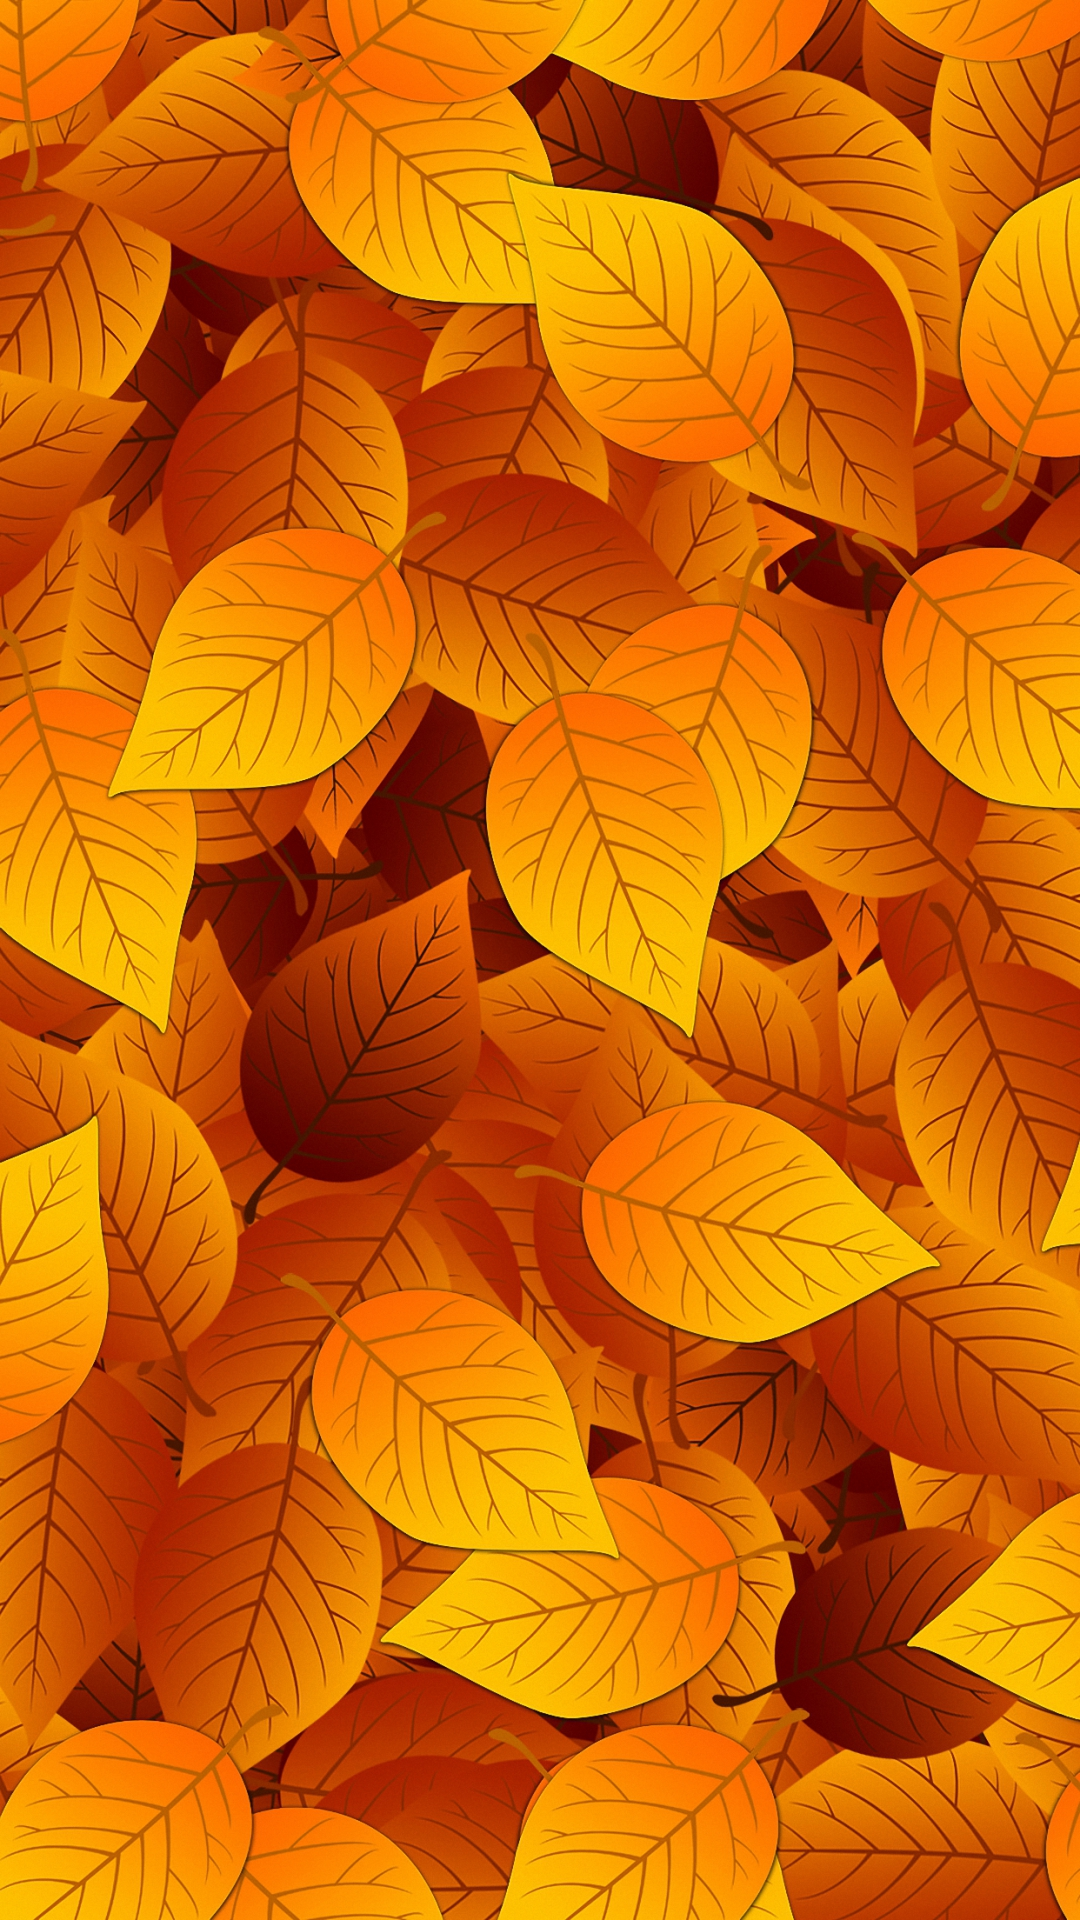 Fall Texture Wallpaper Oto 241 O Fondos De Pantalla Para Android E Iphone Fondos